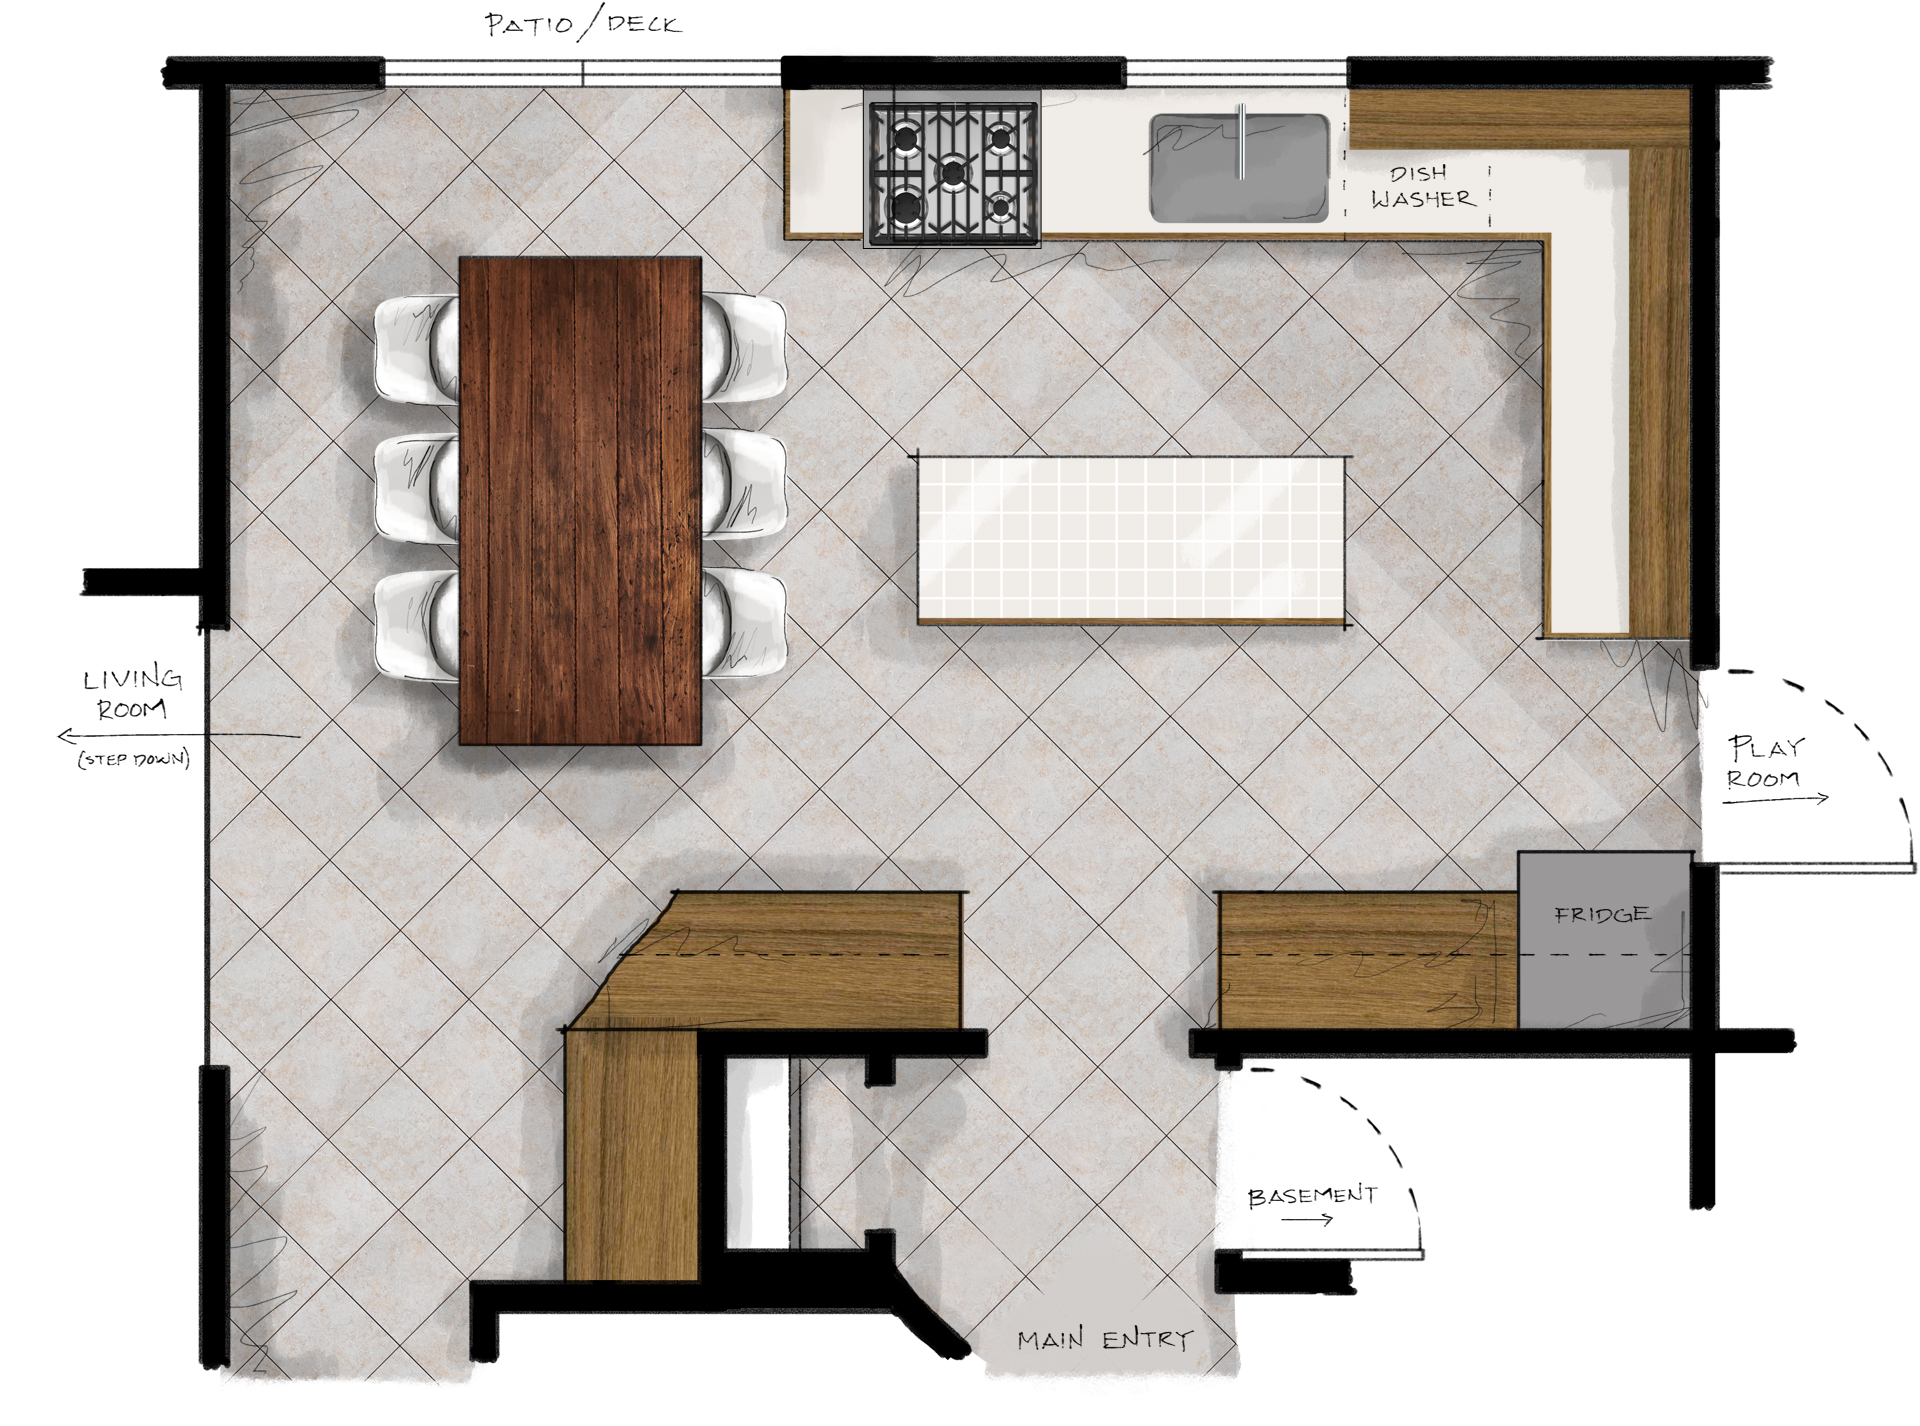 New kitchen plans making nice in the midwest for Plan your kitchen